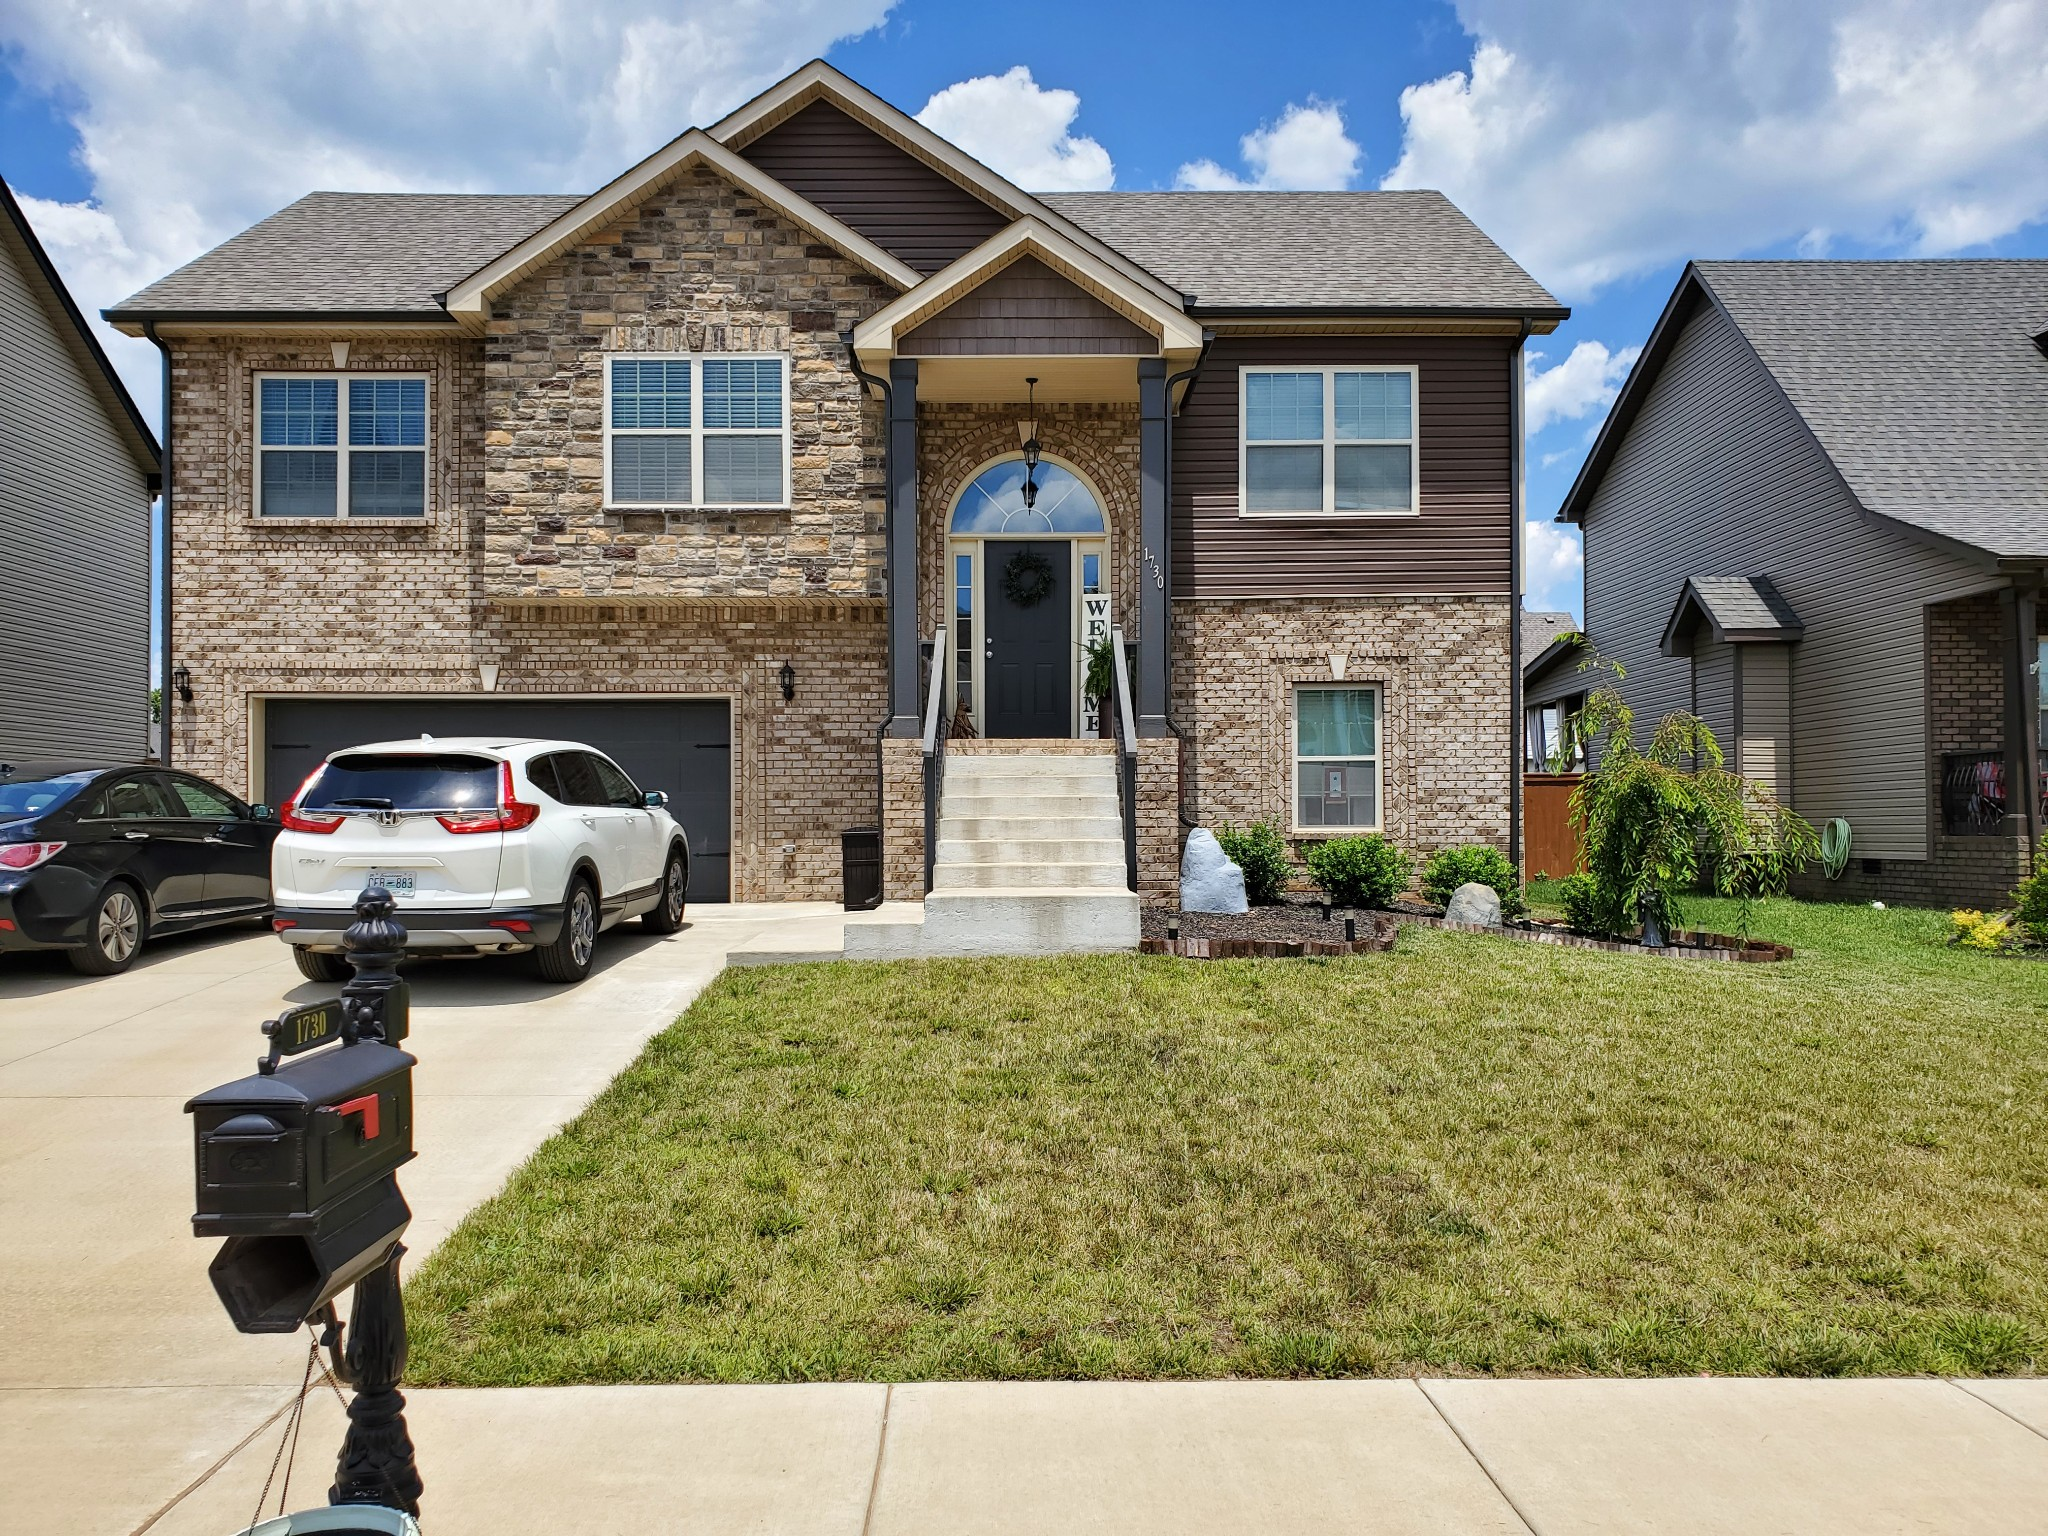 Welcome Home!  This home has the WOW factor.  Beautiful split foyer home close to Rossview Schools and Exit 8.  Two master suites with plenty of space.  Upstairs has well designed open concept for family gatherings. This home will be your happy place.